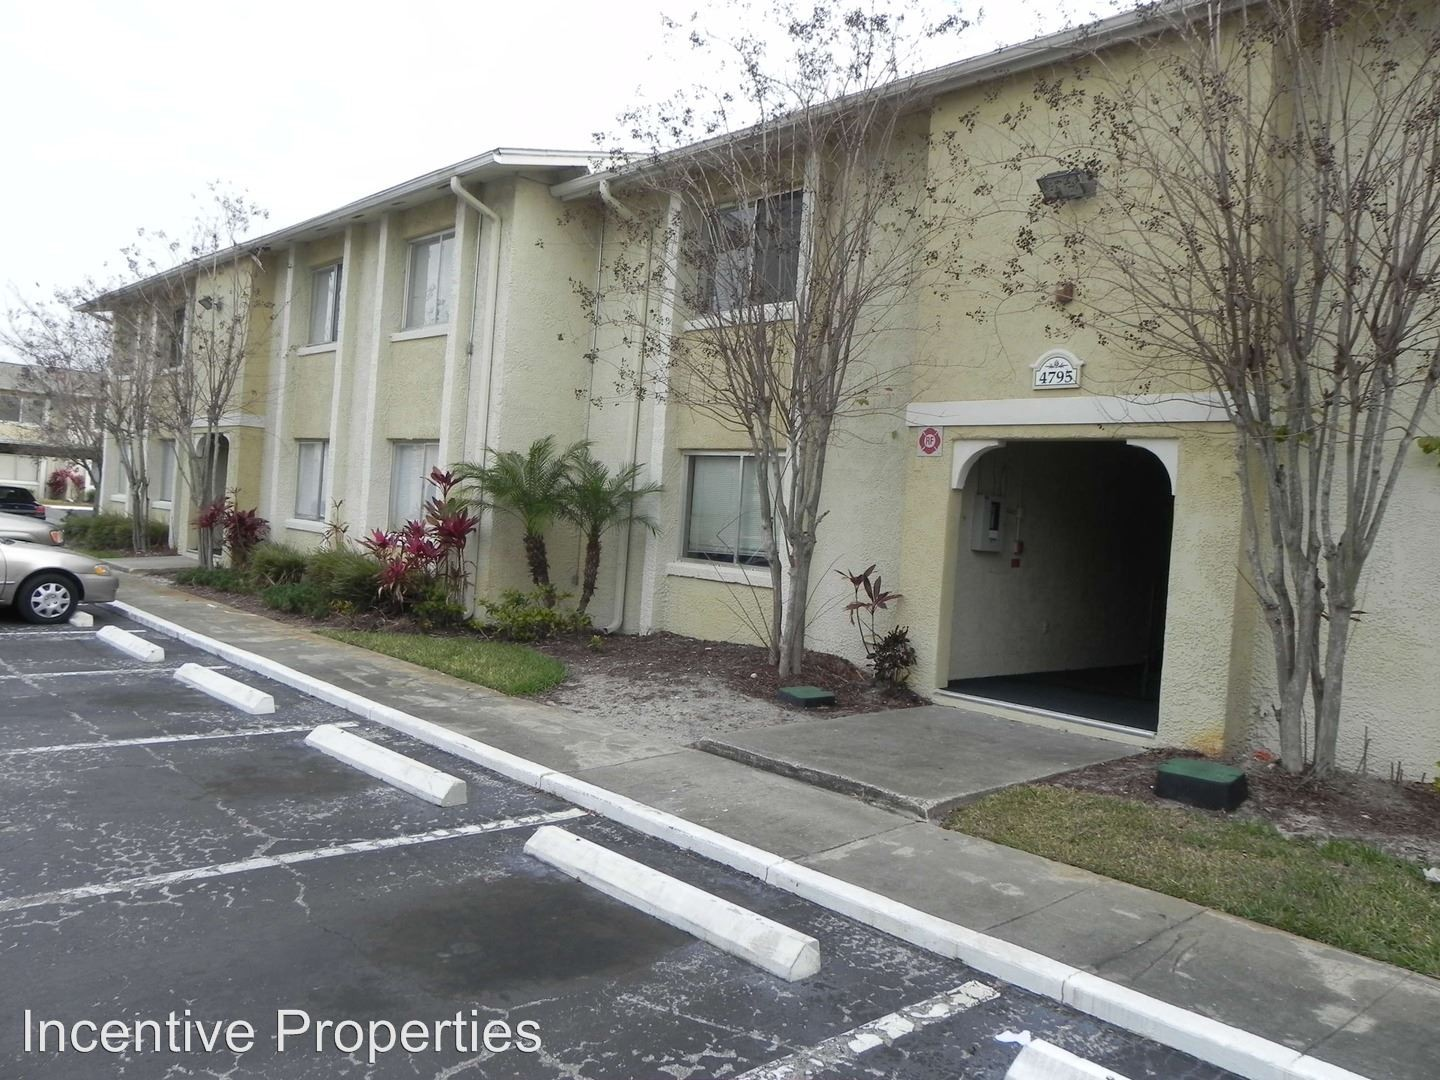 4799 S Texas Ave C Orlando Fl 32839 3 Bedroom Apartment For Rent For 950 Month Zumper